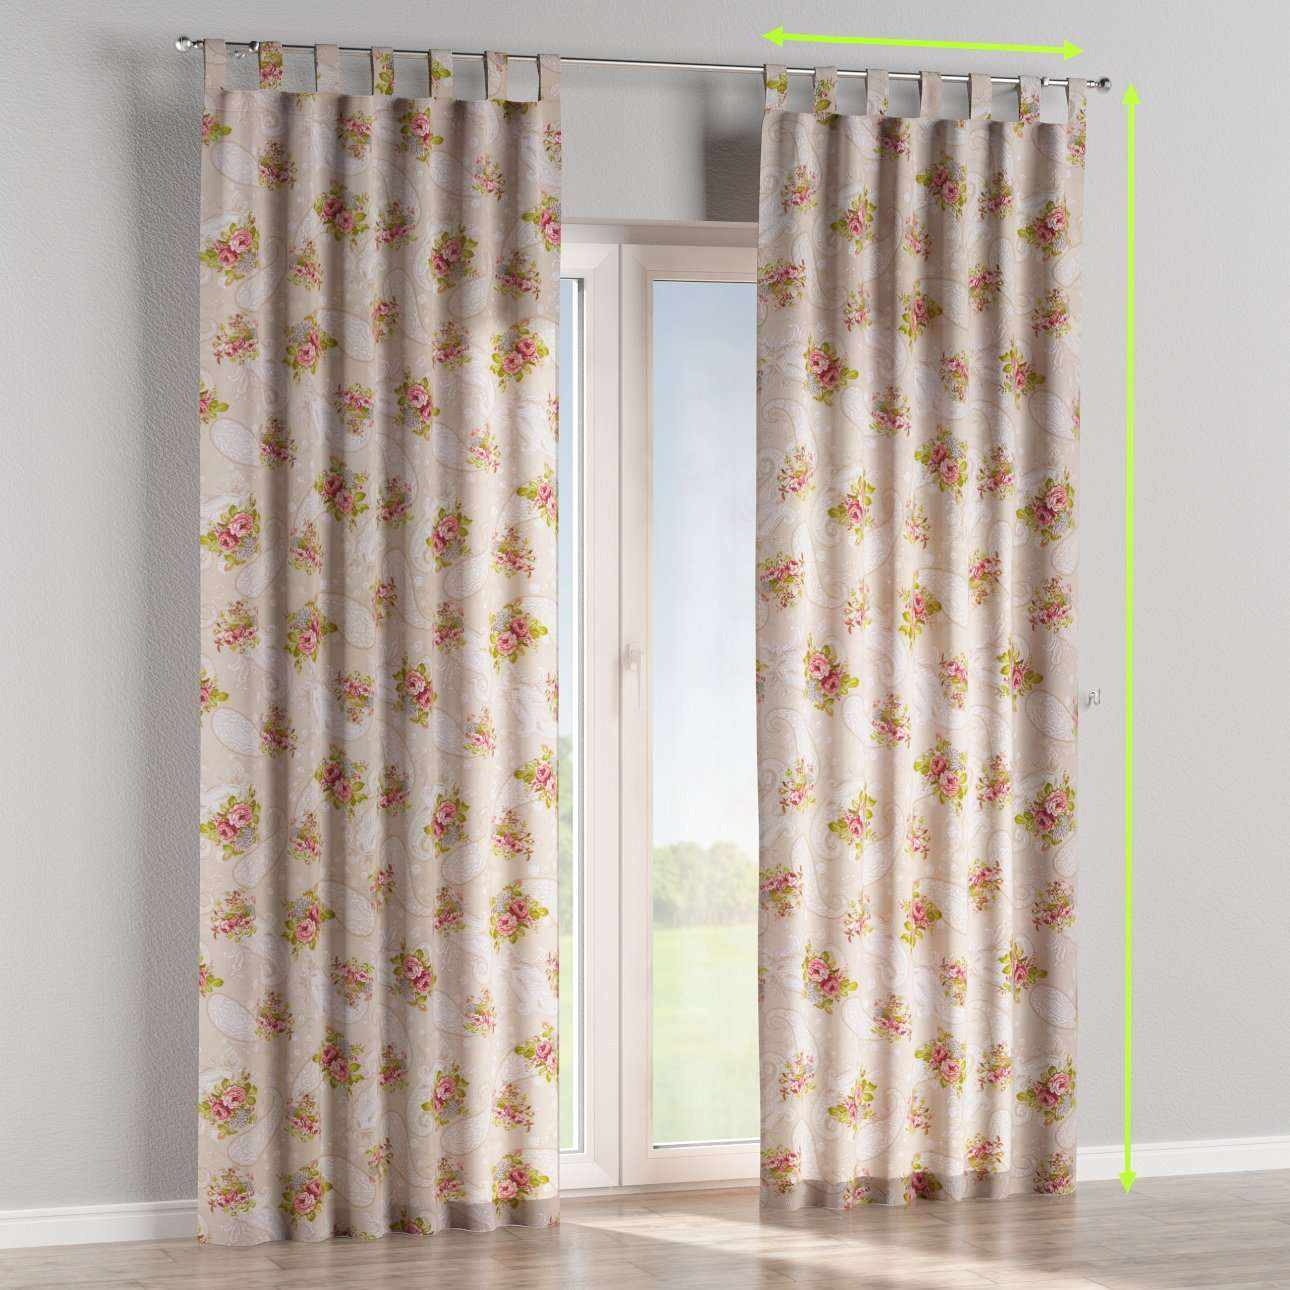 Tab top lined curtains in collection Flowers, fabric: 311-15